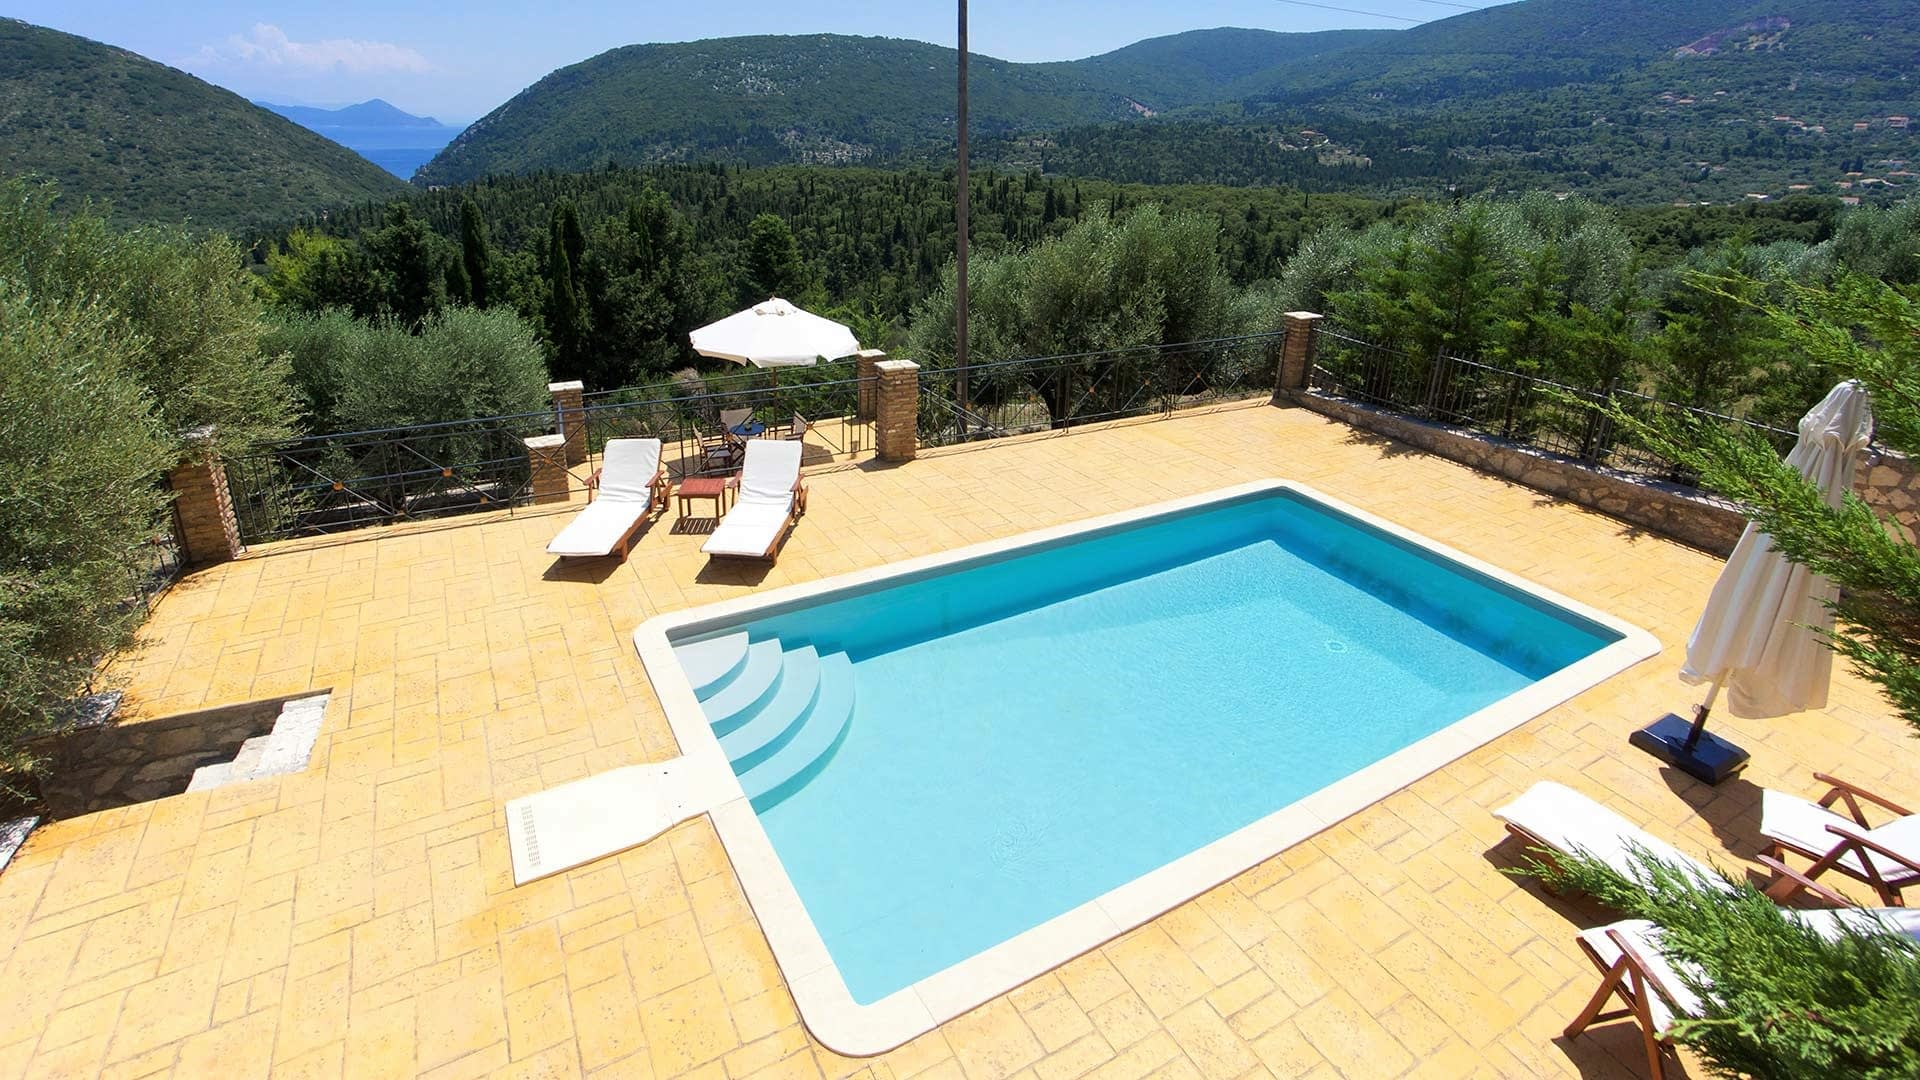 Courtyard and swimming pool of stone villa for rent in Ithaca Greece, Pilikata